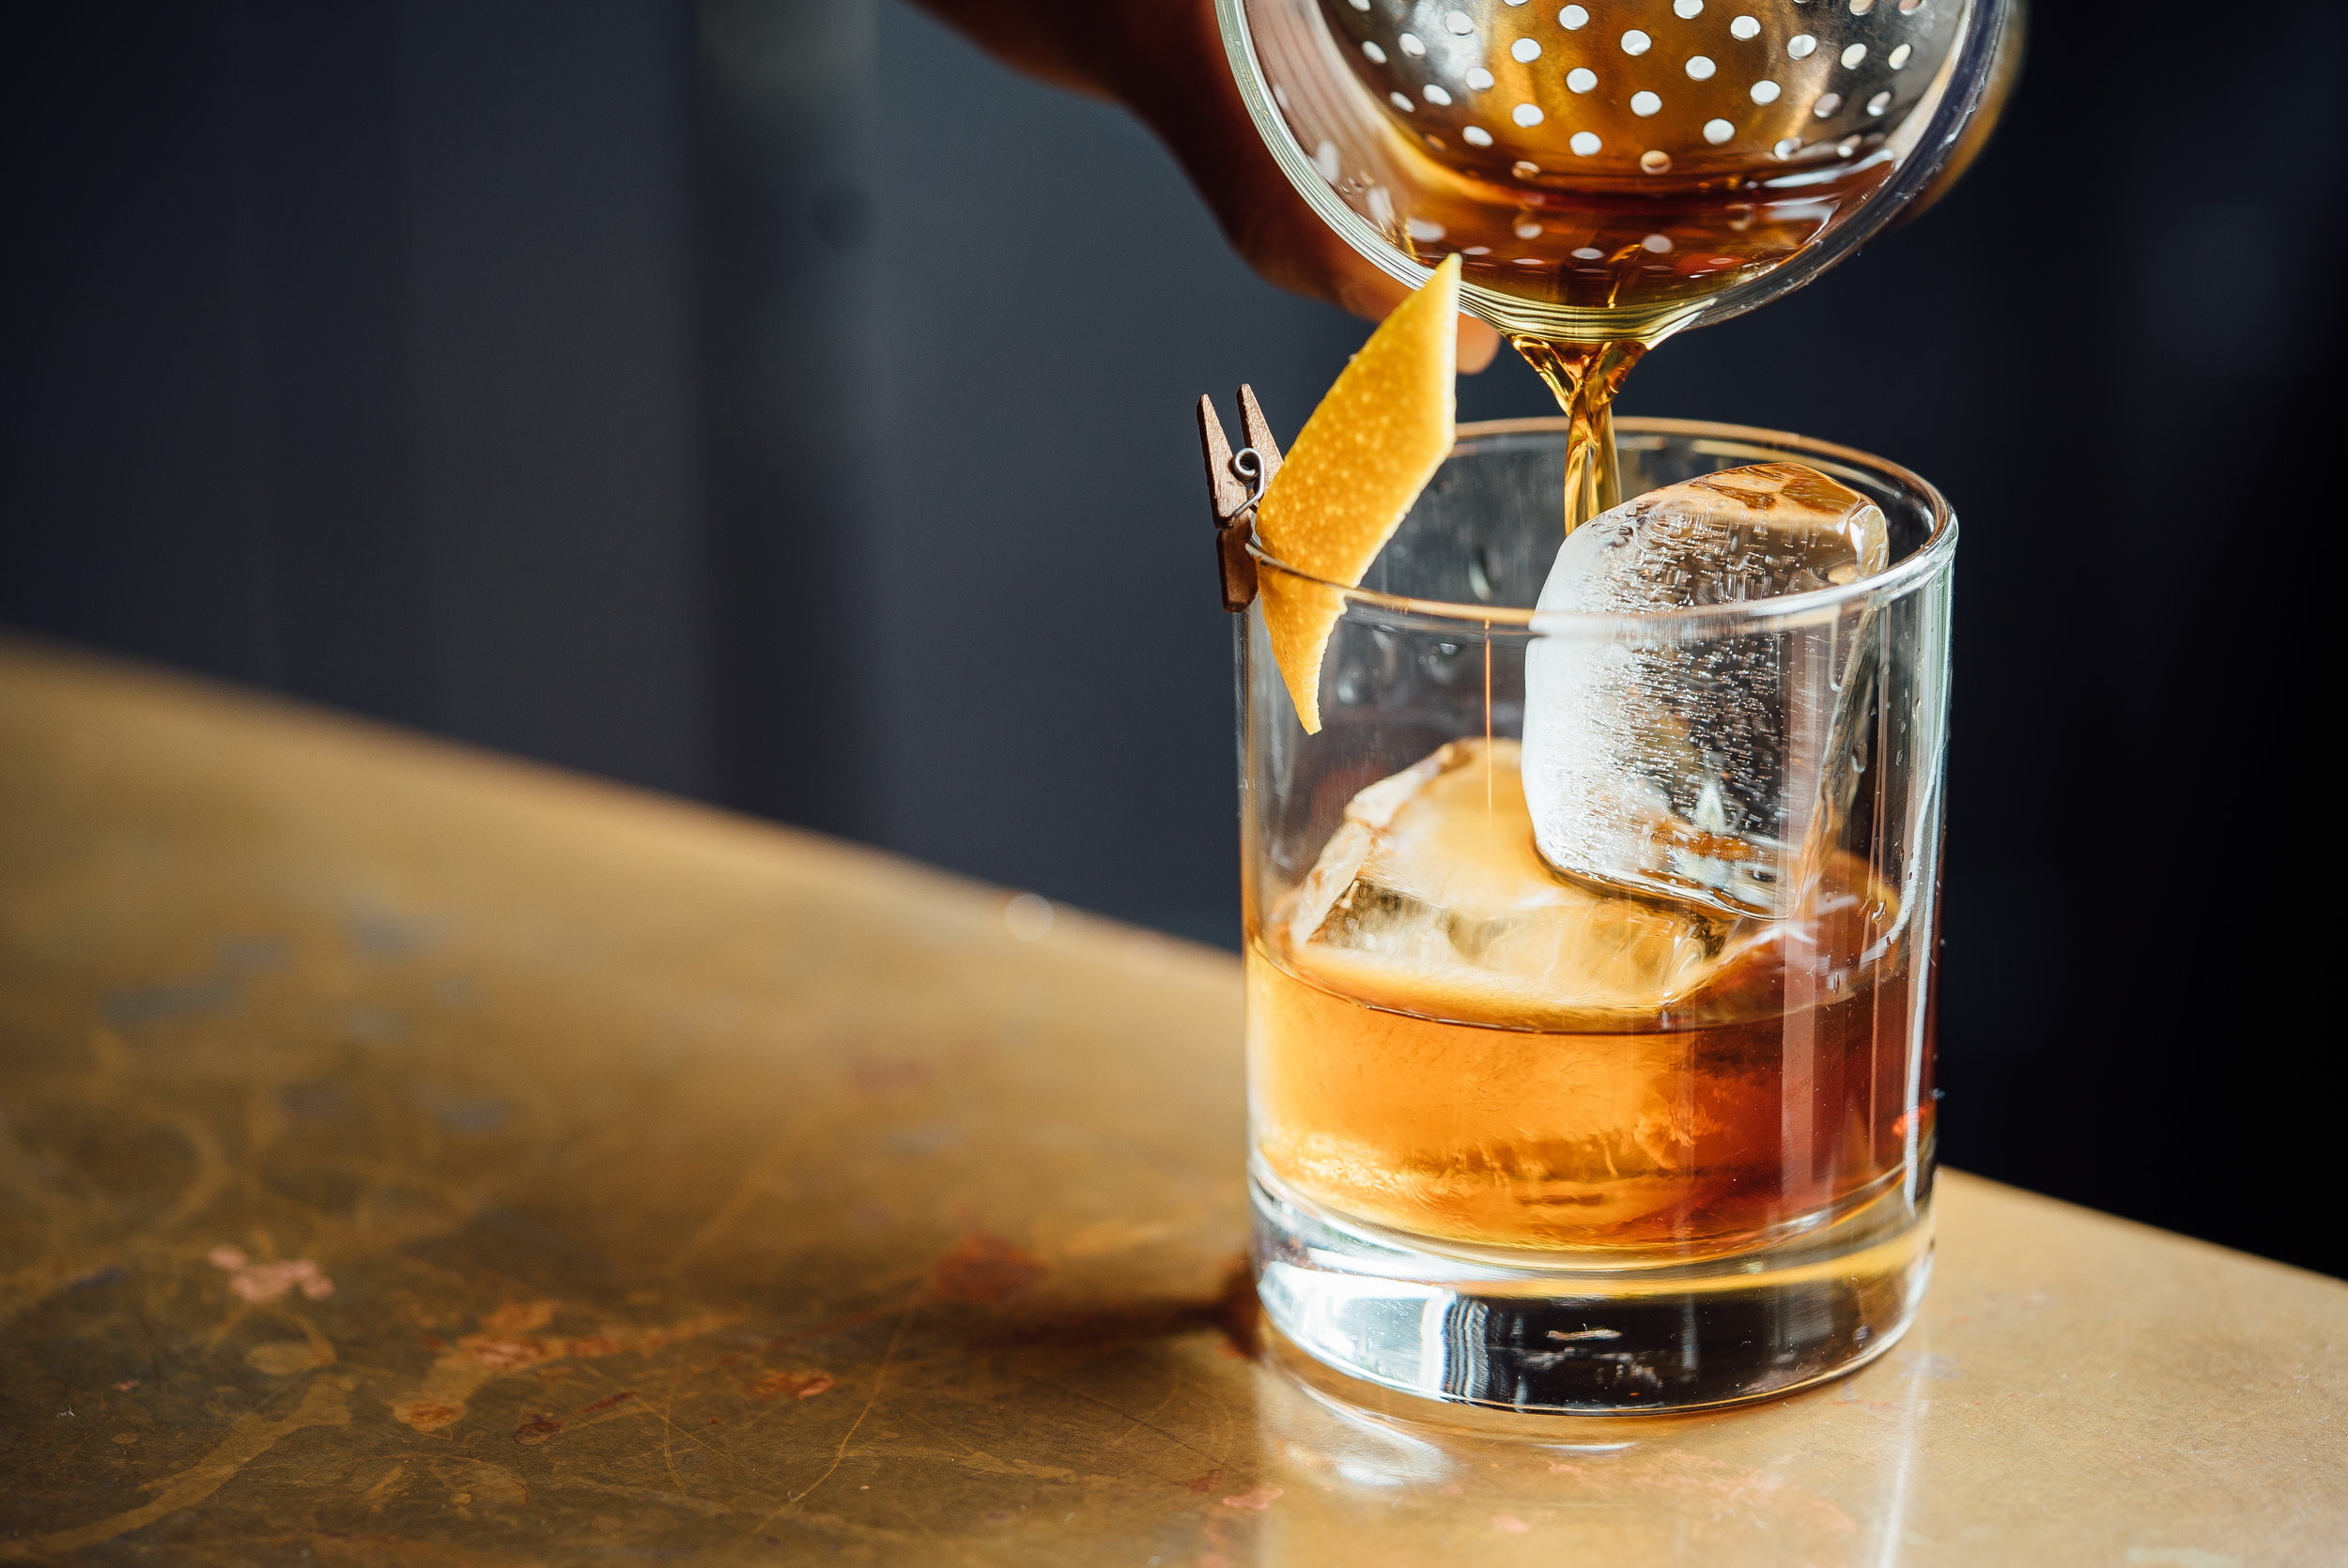 Honey Old Fashioned - Rye Whiskey, Honey, Lemon, Sugar, Bitters | 9